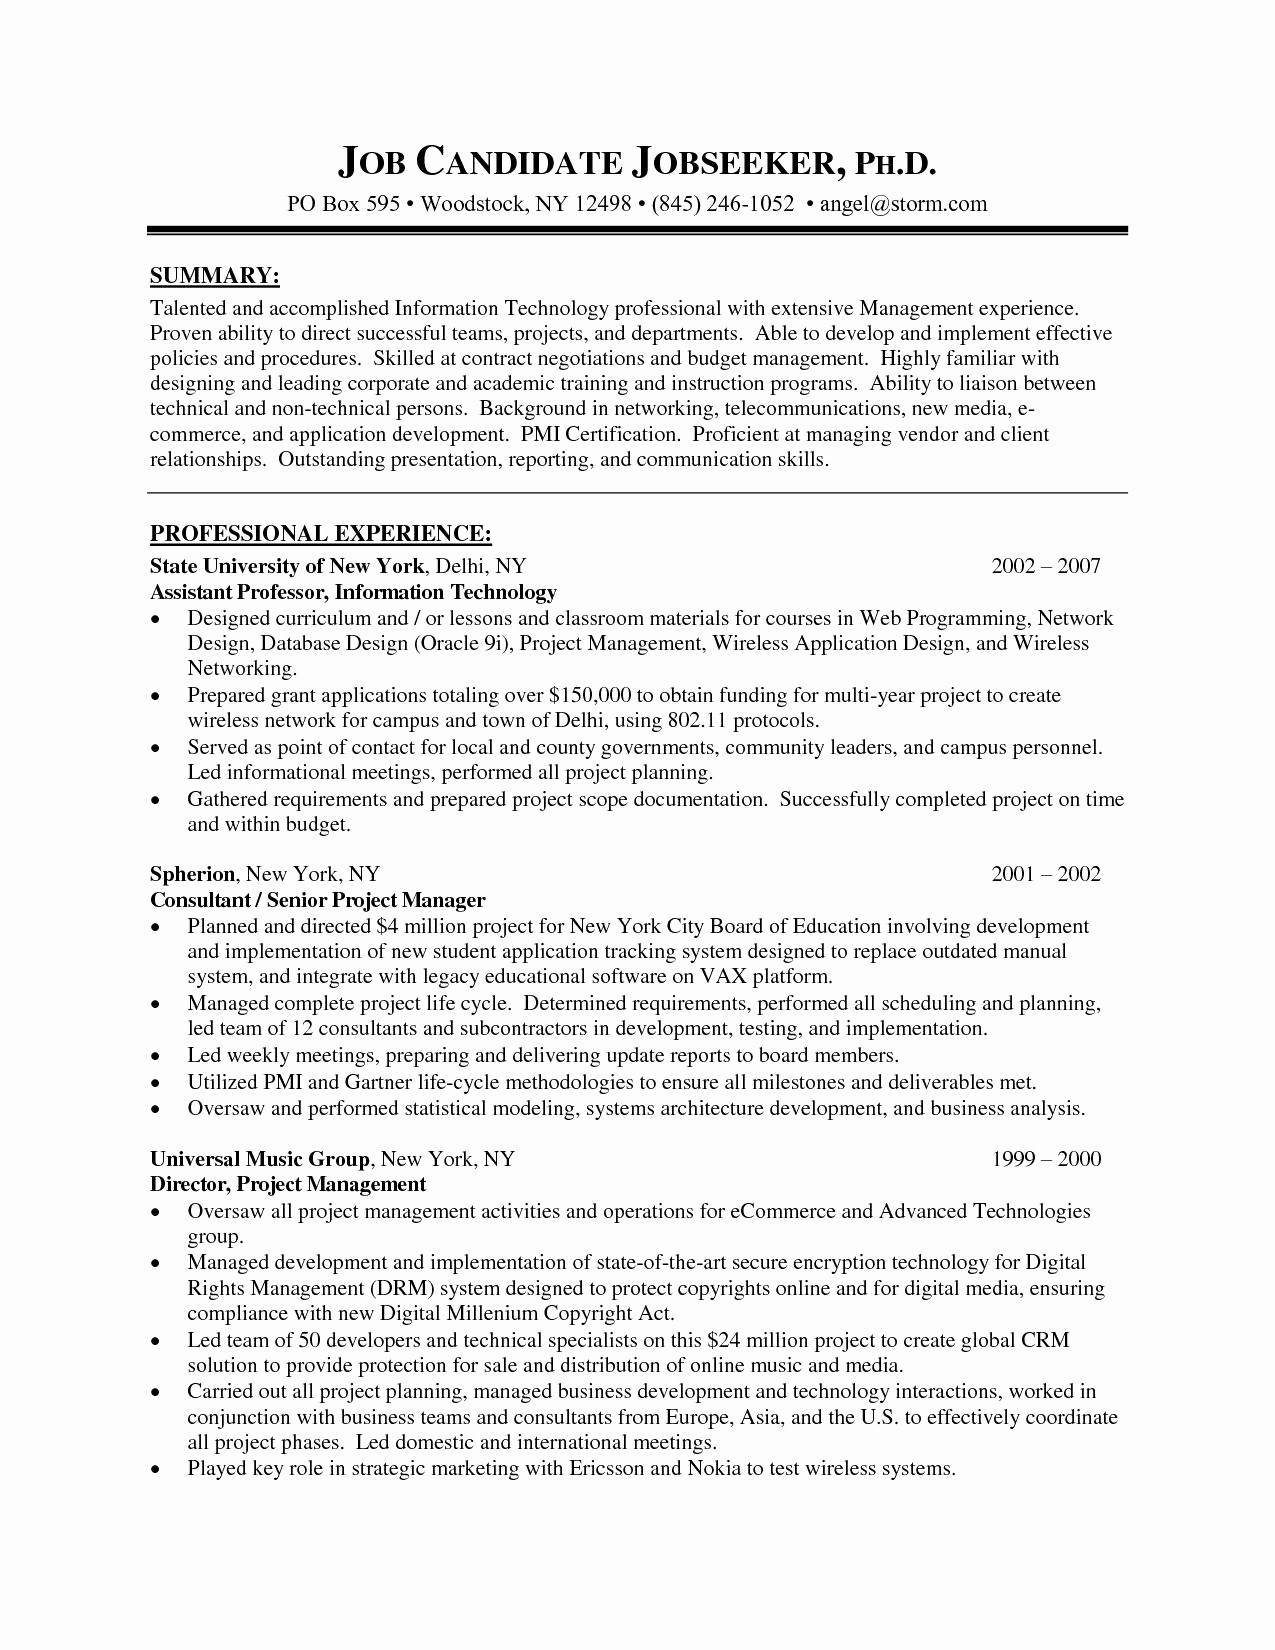 Project Management Resumes Best Of Project Manager Resume Template And Project Management Resume Templates